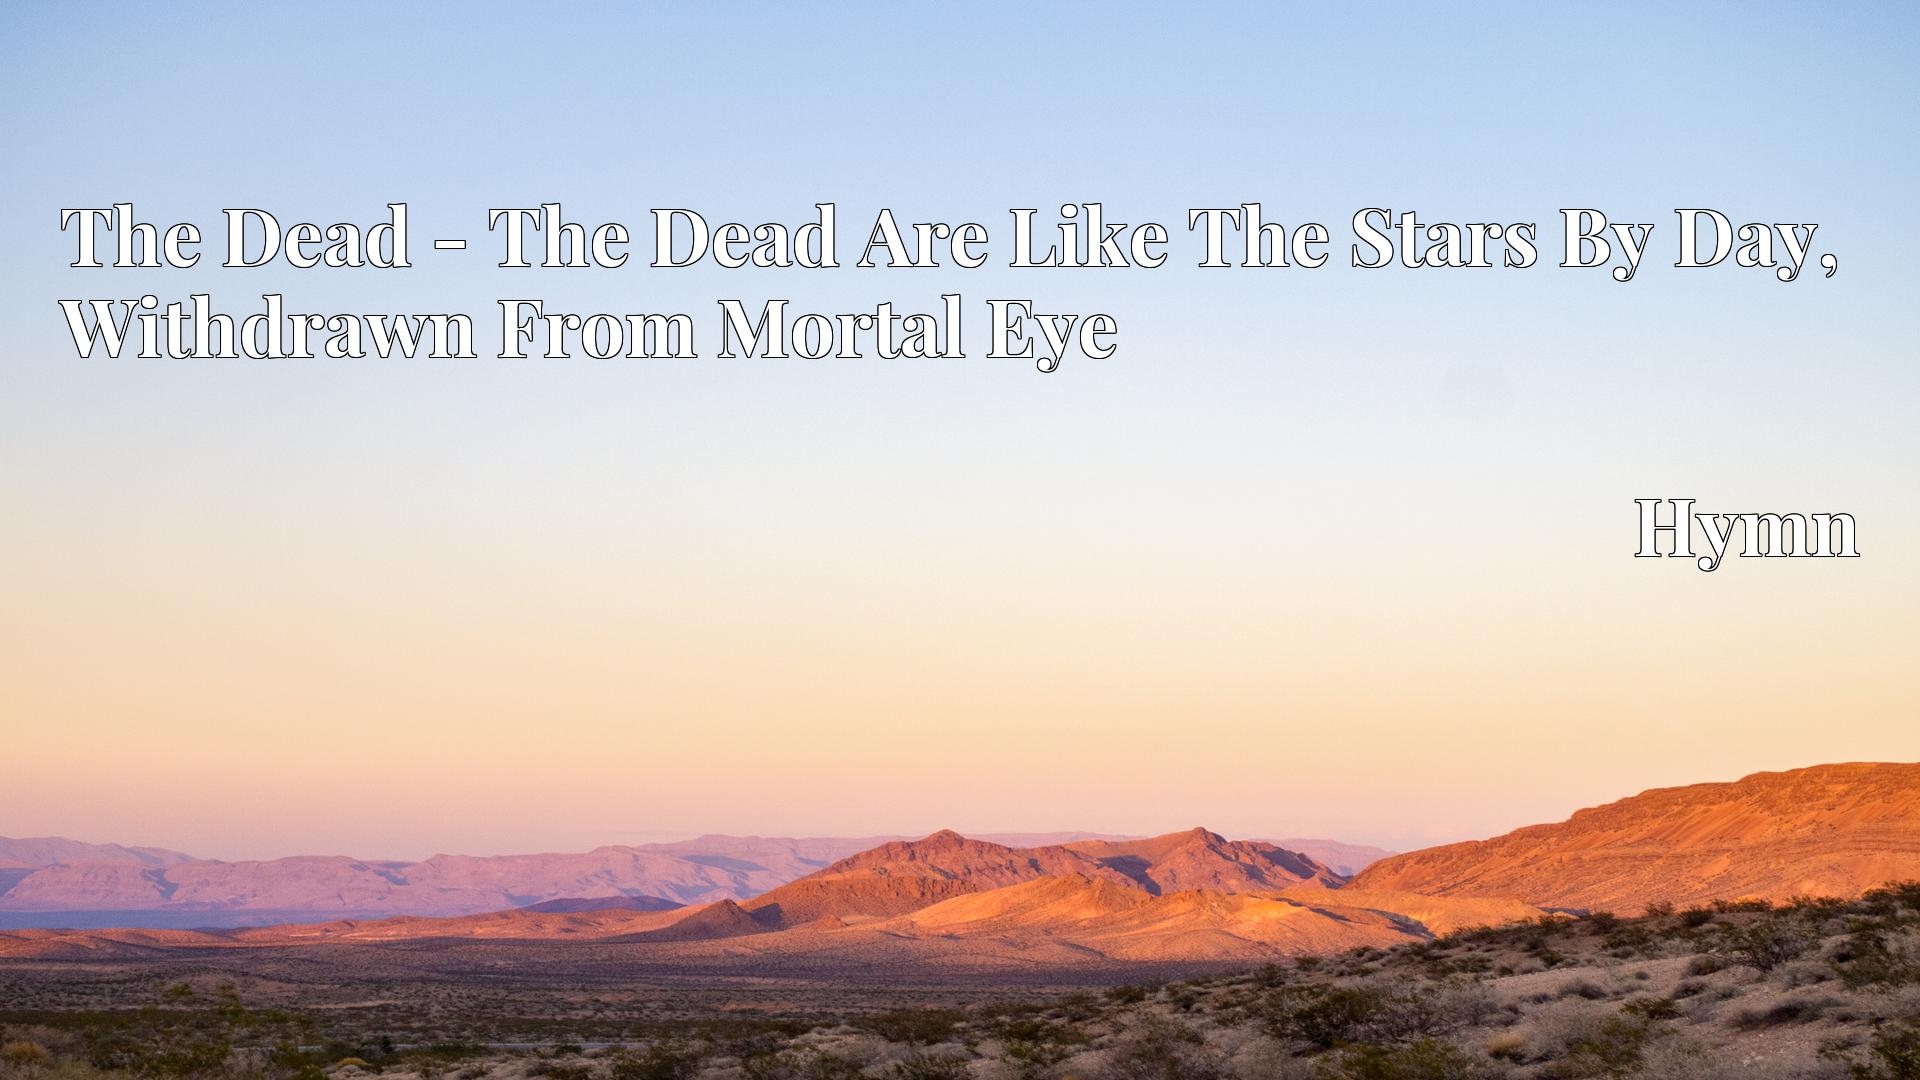 The Dead - The Dead Are Like The Stars By Day, Withdrawn From Mortal Eye - Hymn